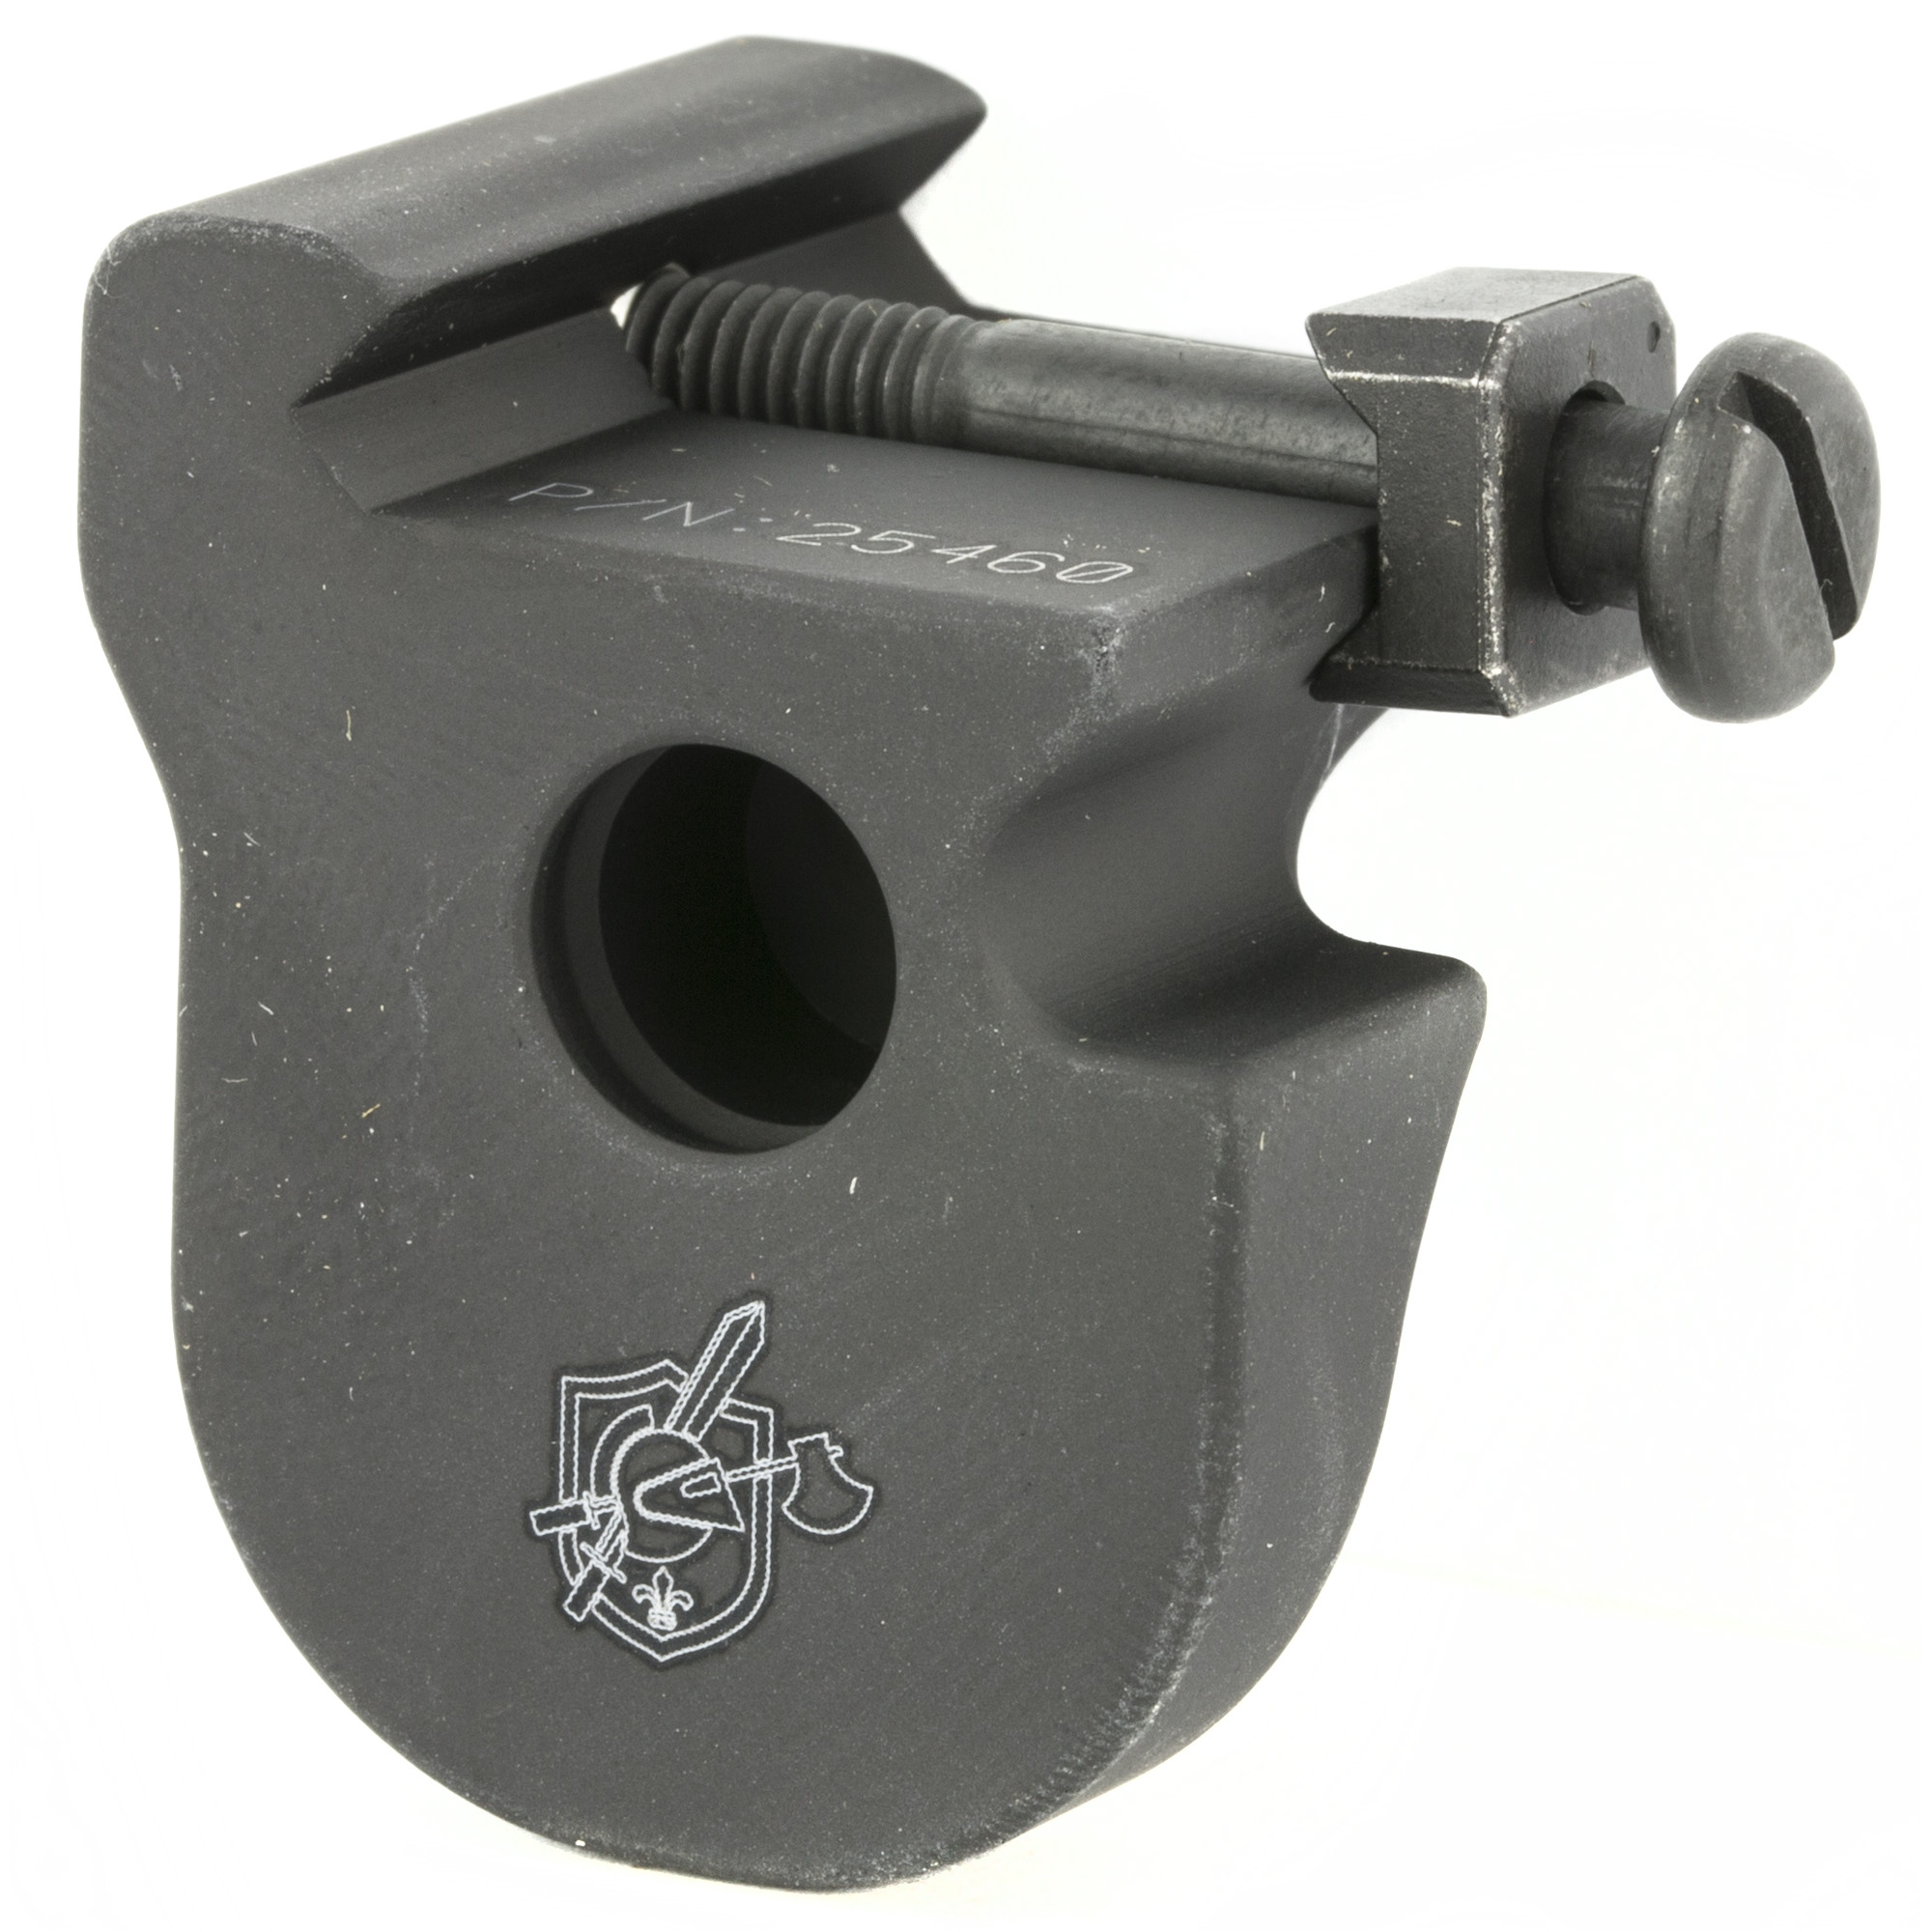 The KAC Terminator Hand stop provides a tactile reference point for the support hand that helps the shooter to acquire a consistent grip on the rifle. It features an integral QD Sling Swivel Socket on its face for increased versatility. Attaches to any M1913 Picatinny Rail surface via a screw and clamp arrangement. Push button sling swivel sold separately. Aluminum construction.